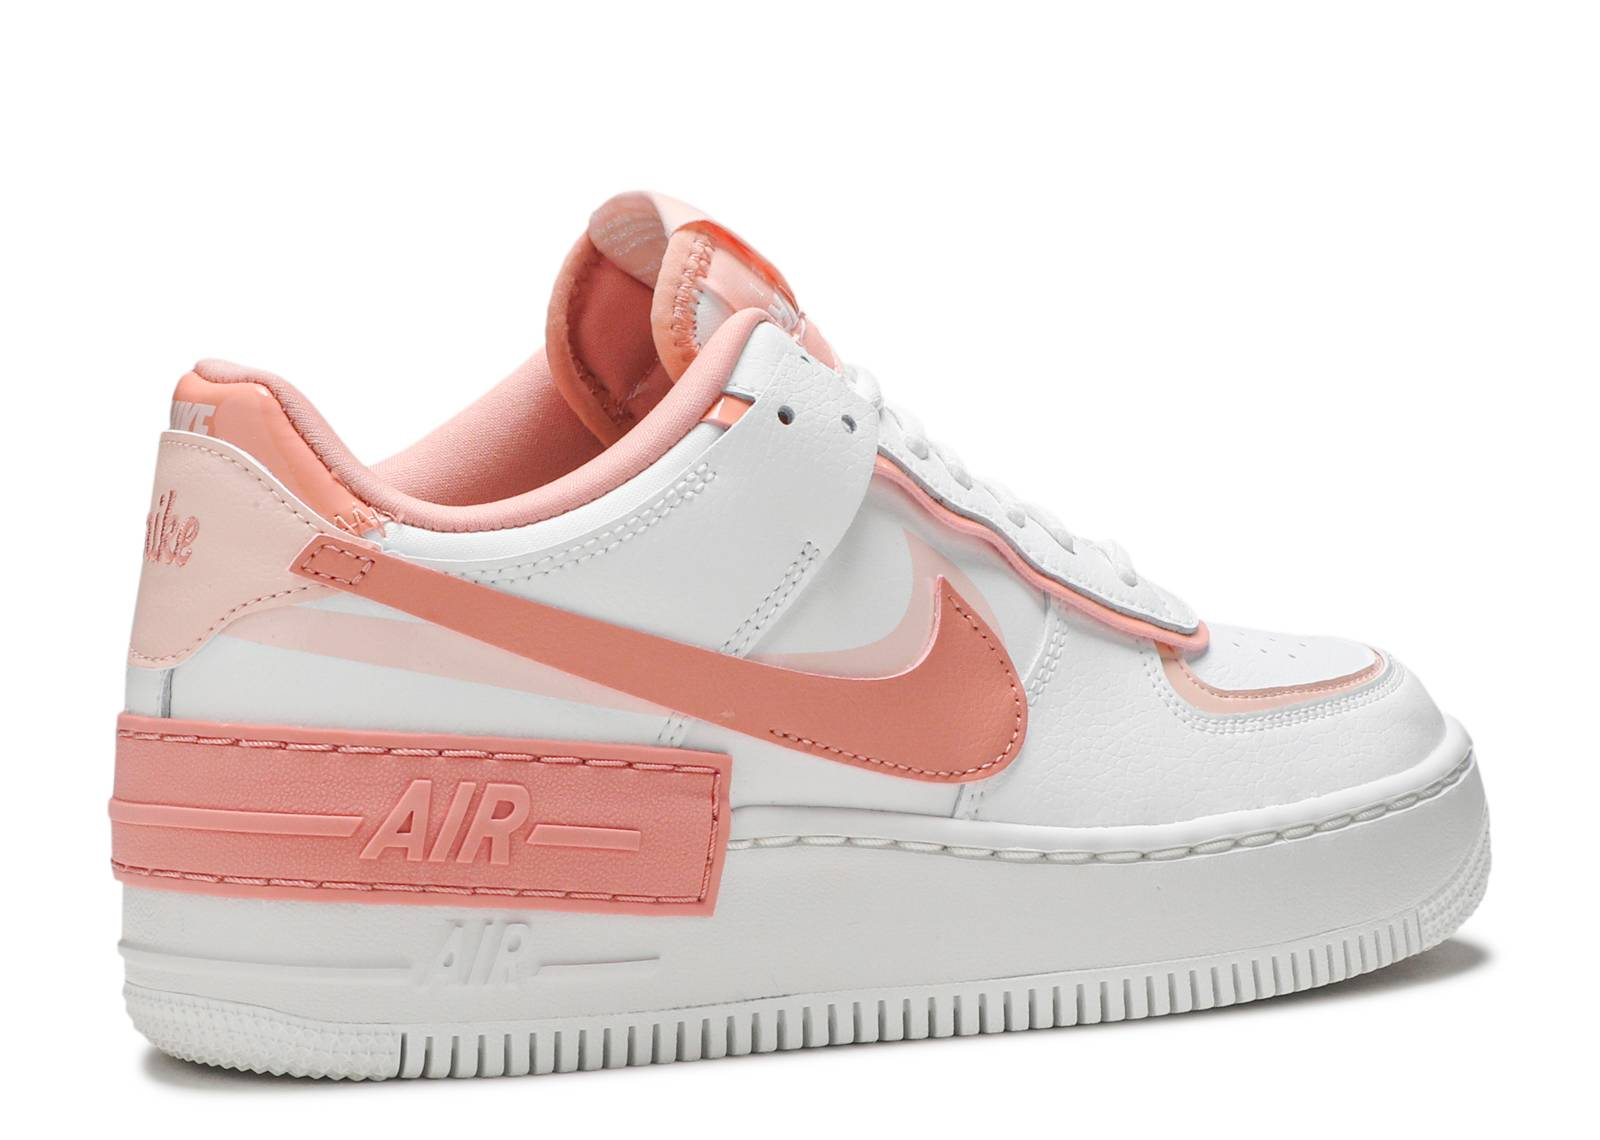 Wmns Air Force 1 Shadow Washed Coral Nike Cj1641 101 Summit White Washed Coral Summit White Pink Quartz Flight Club The nike swooshes are sitting on top of each other, while the exaggarated stacked midsole features an 'air' tab to the side. wmns air force 1 shadow washed coral